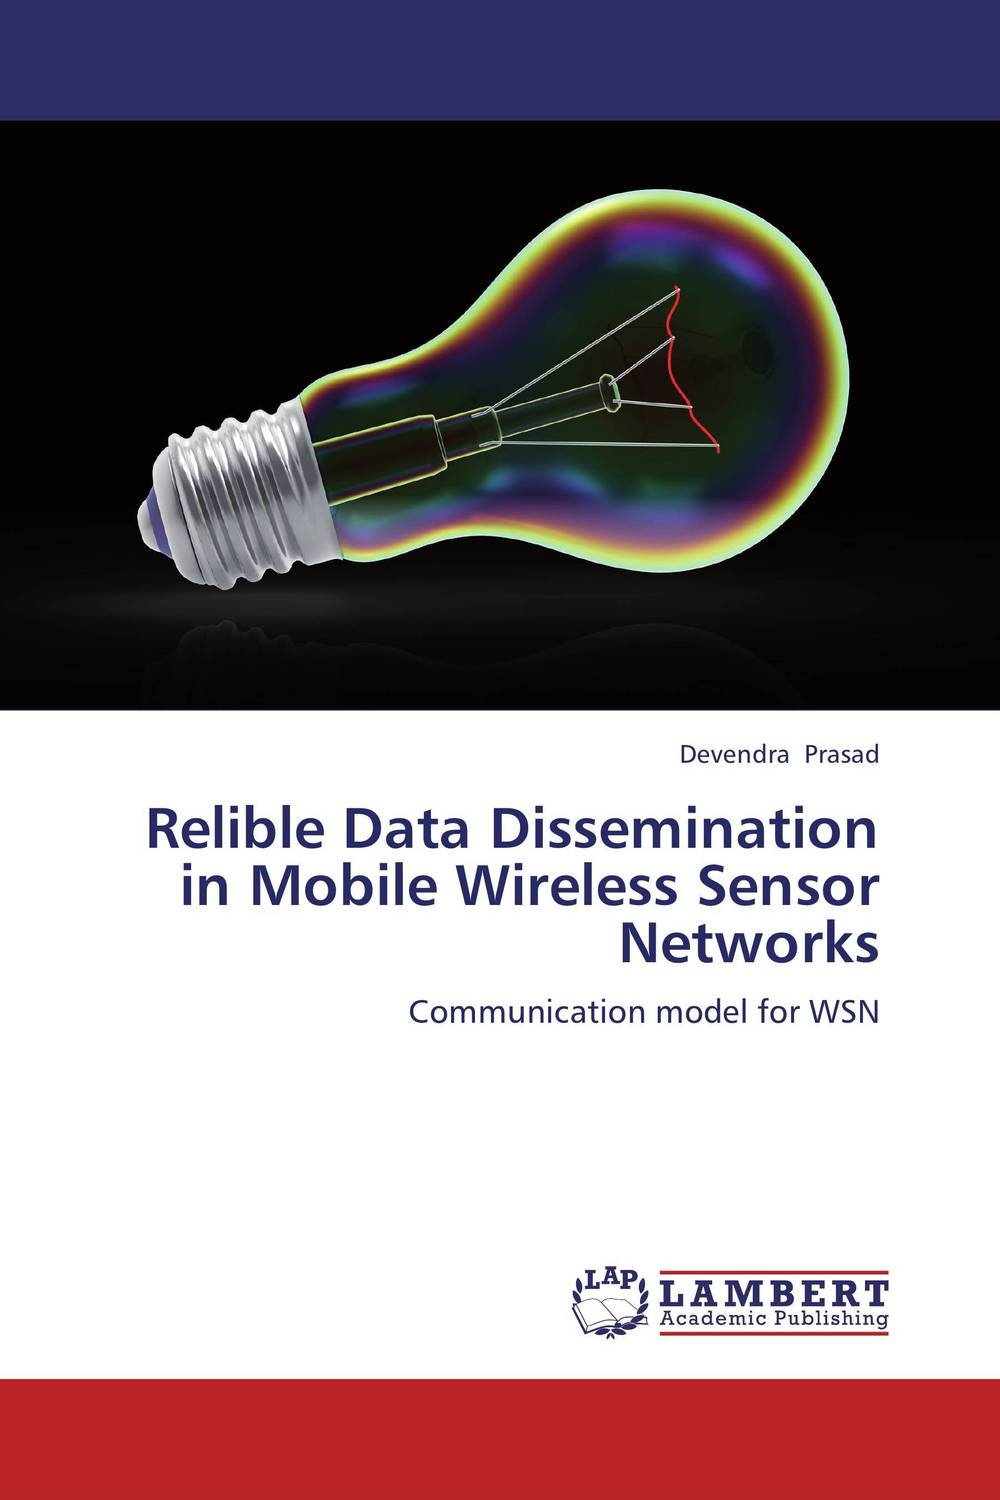 Relible Data Dissemination in Mobile Wireless Sensor Networks